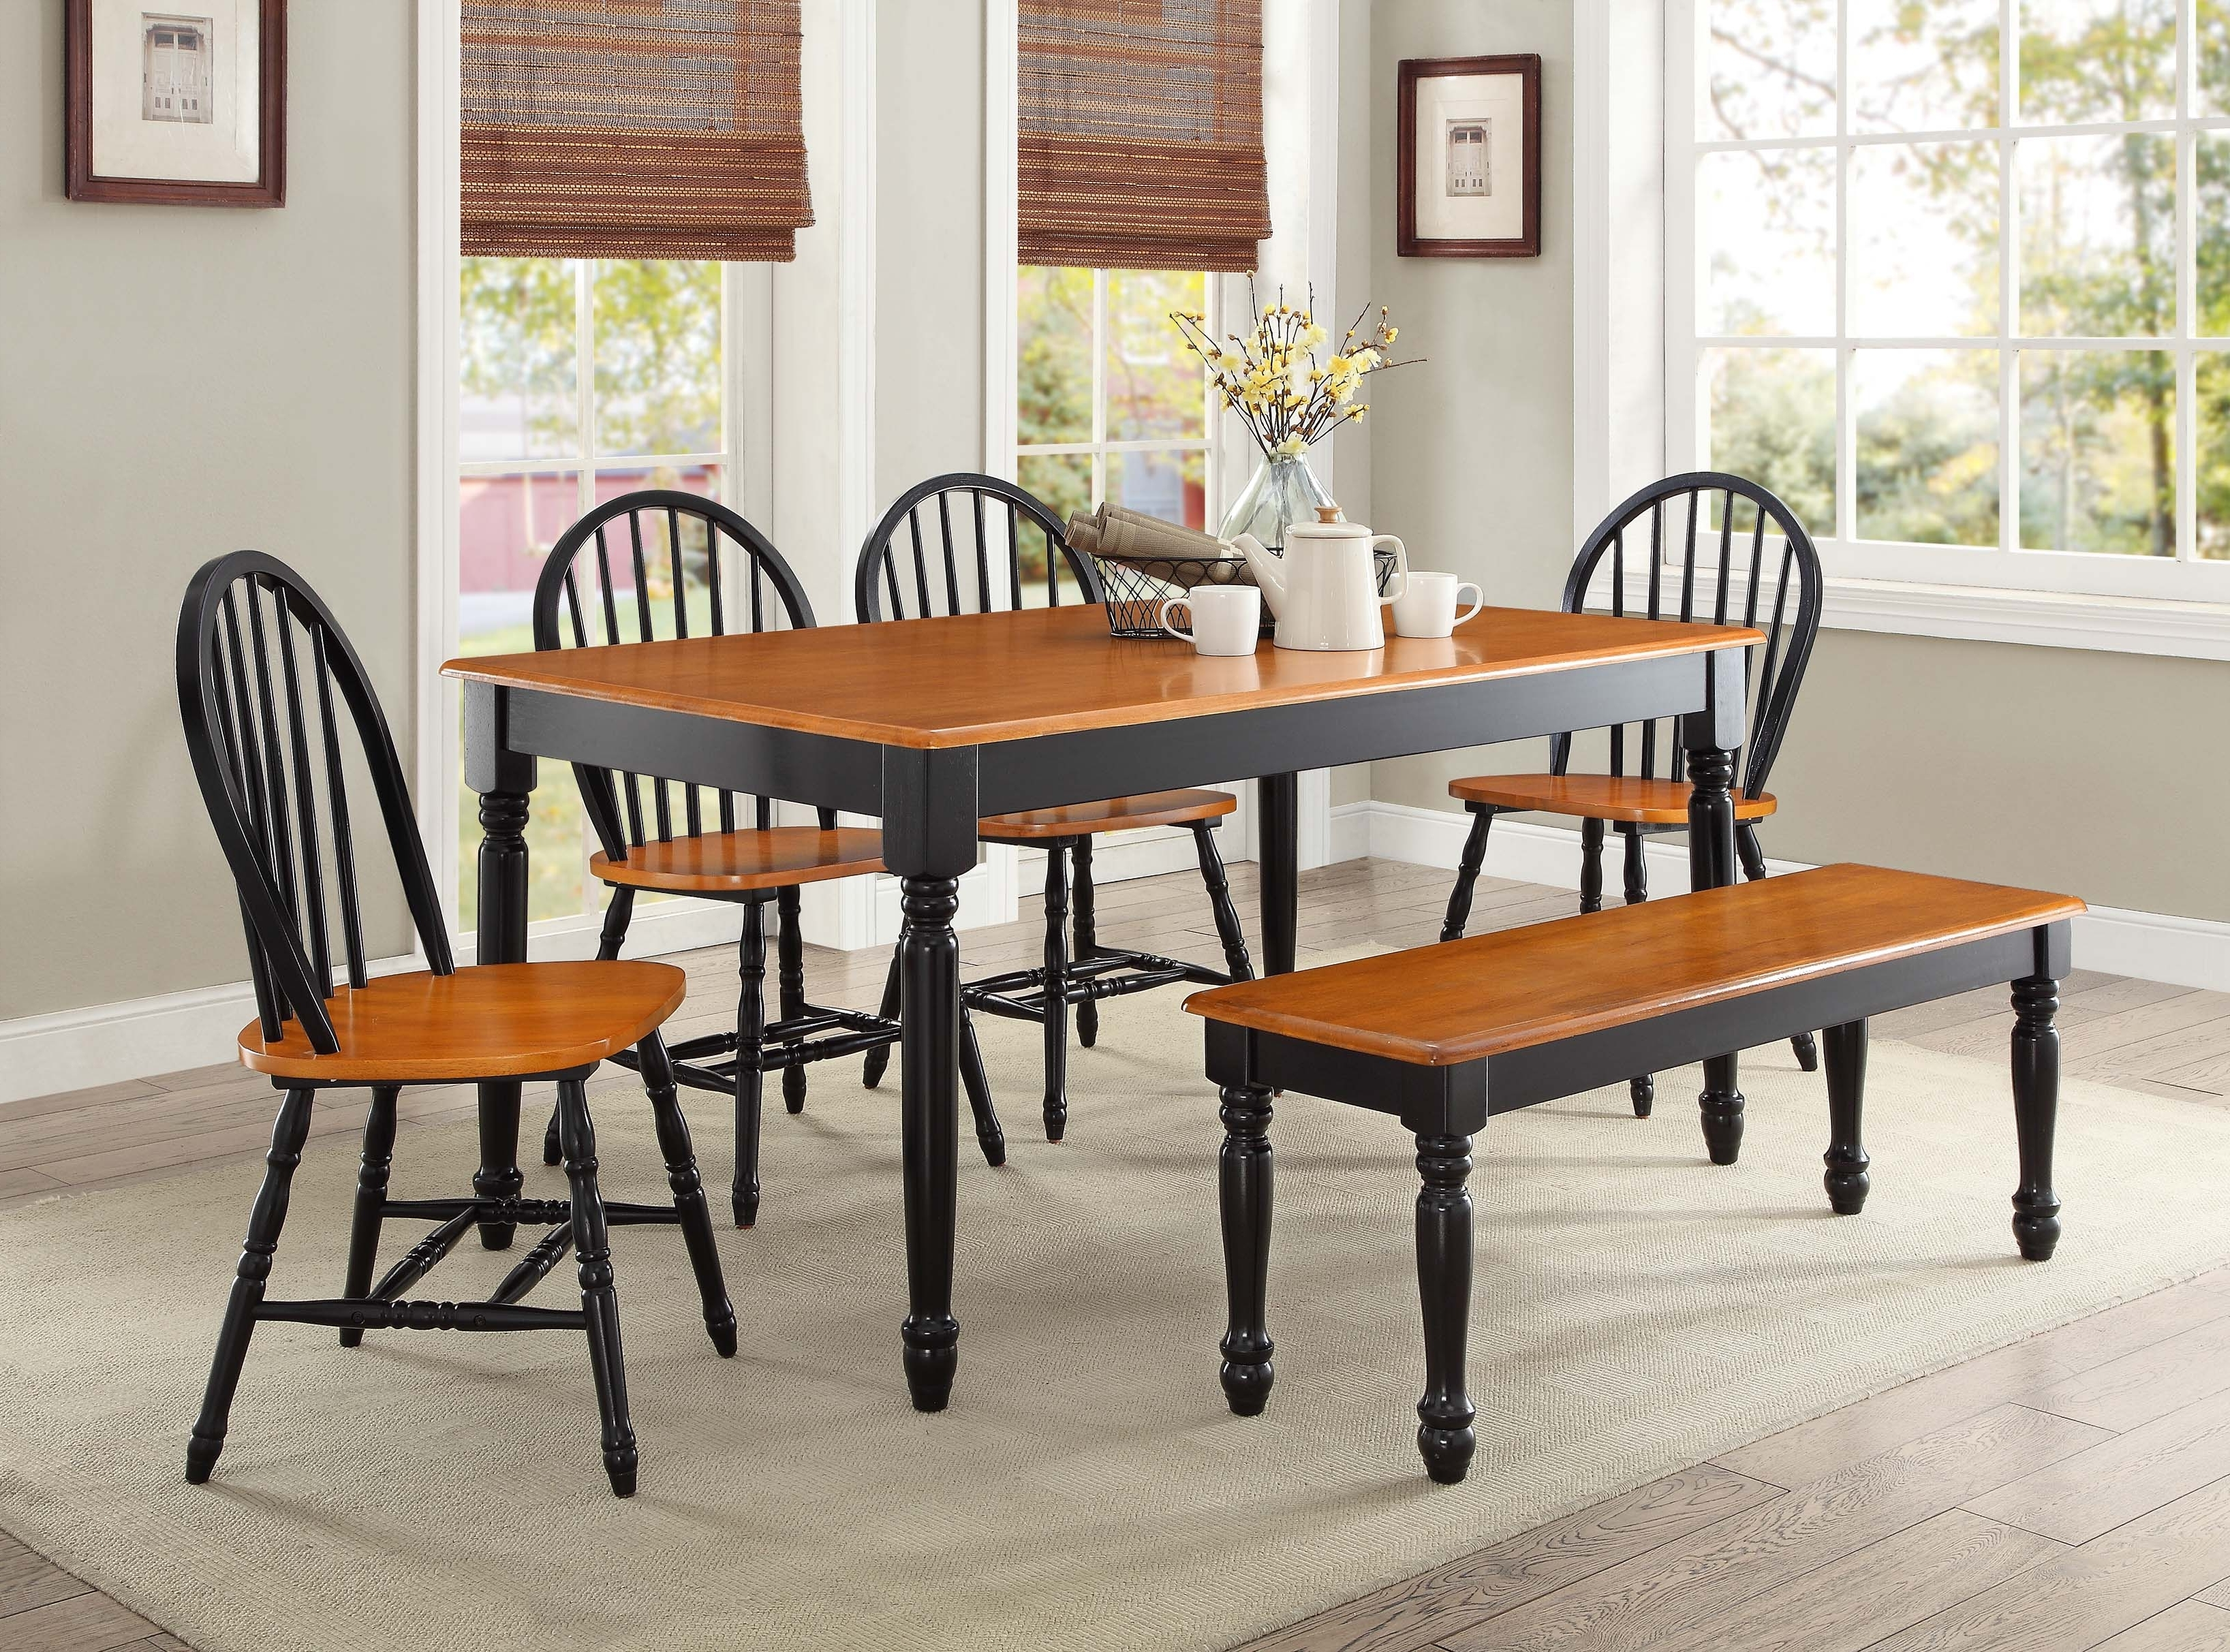 Most Popular Better Homes And Gardens Autumn Lane Farmhouse Dining Table, Black Pertaining To Cream And Oak Dining Tables (View 17 of 25)